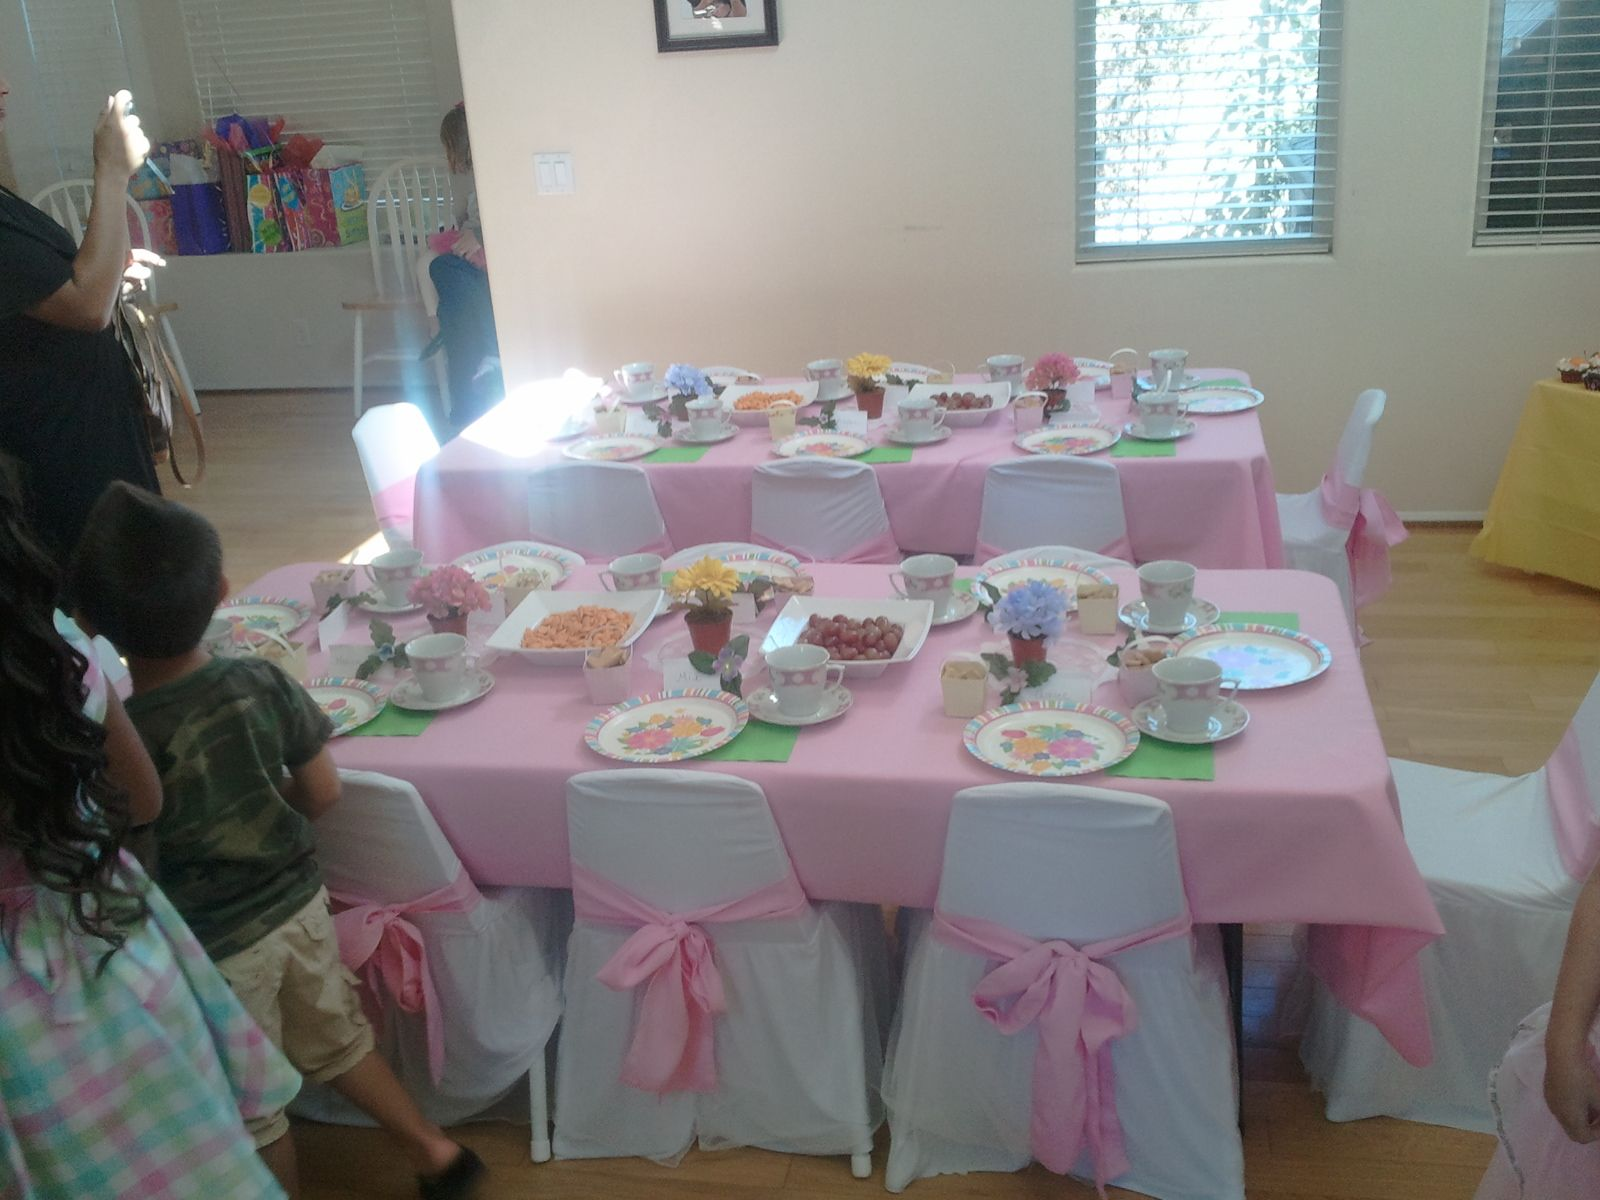 Kids tea party table - Princess Tea Party Ideas Princess Tea Party Setting Princess Tea Party Decorations Tea Party China For Kids Tea Birthday Party Kids Sized Tables And